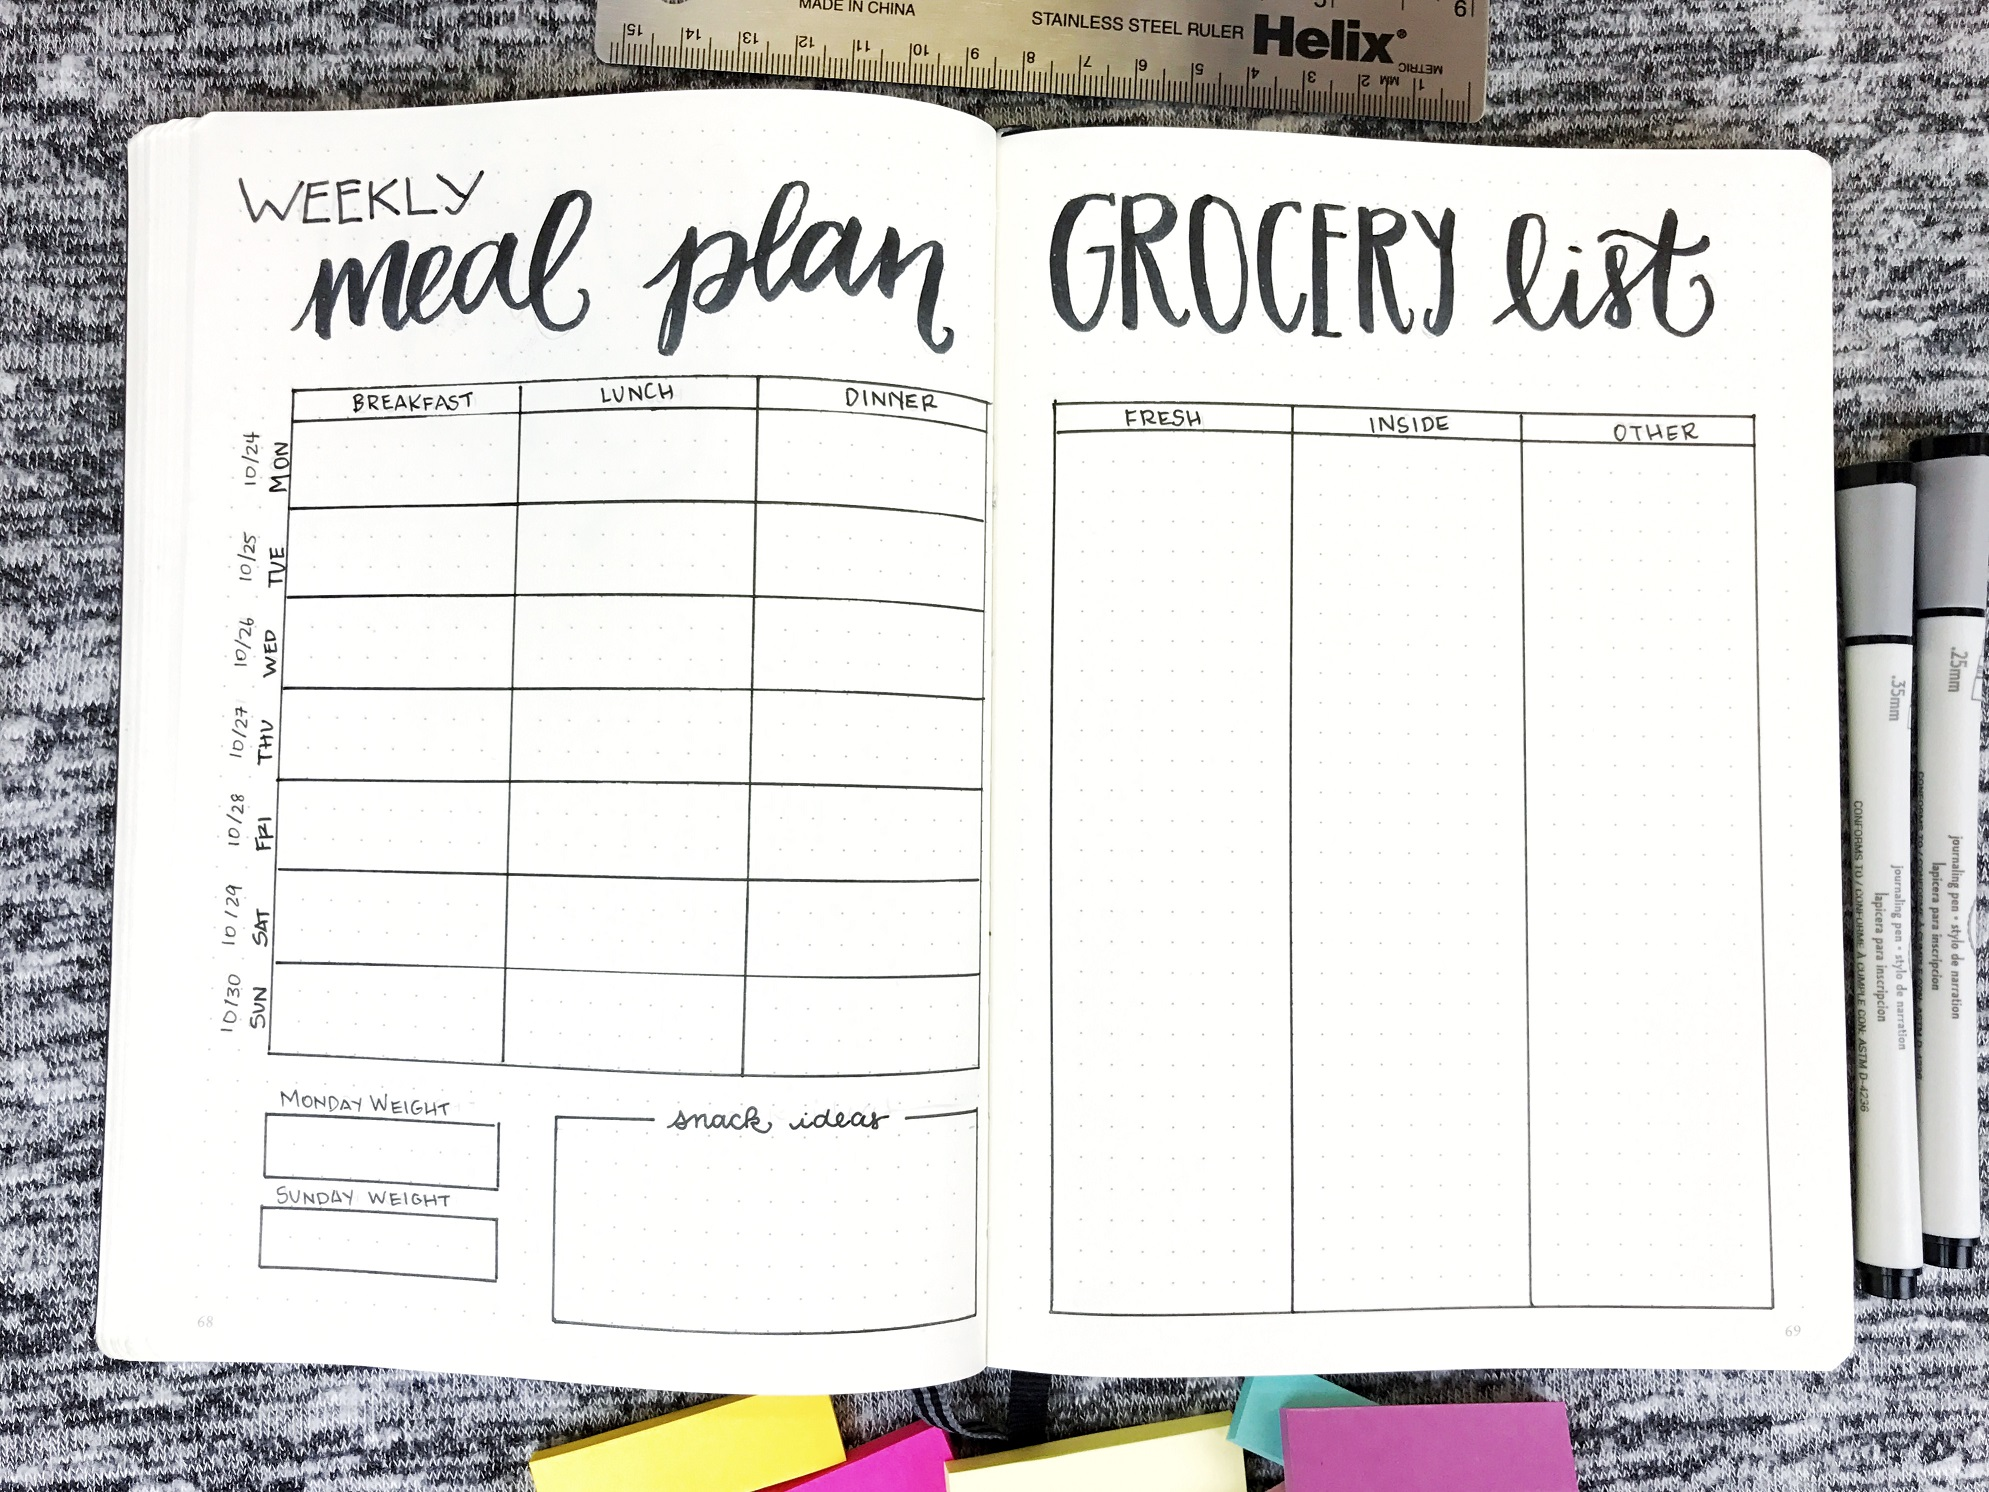 Weekly Meal Planner U0026 Grocery List Journal Spread Fum Lifebywhitney.com.  Example Grocery List